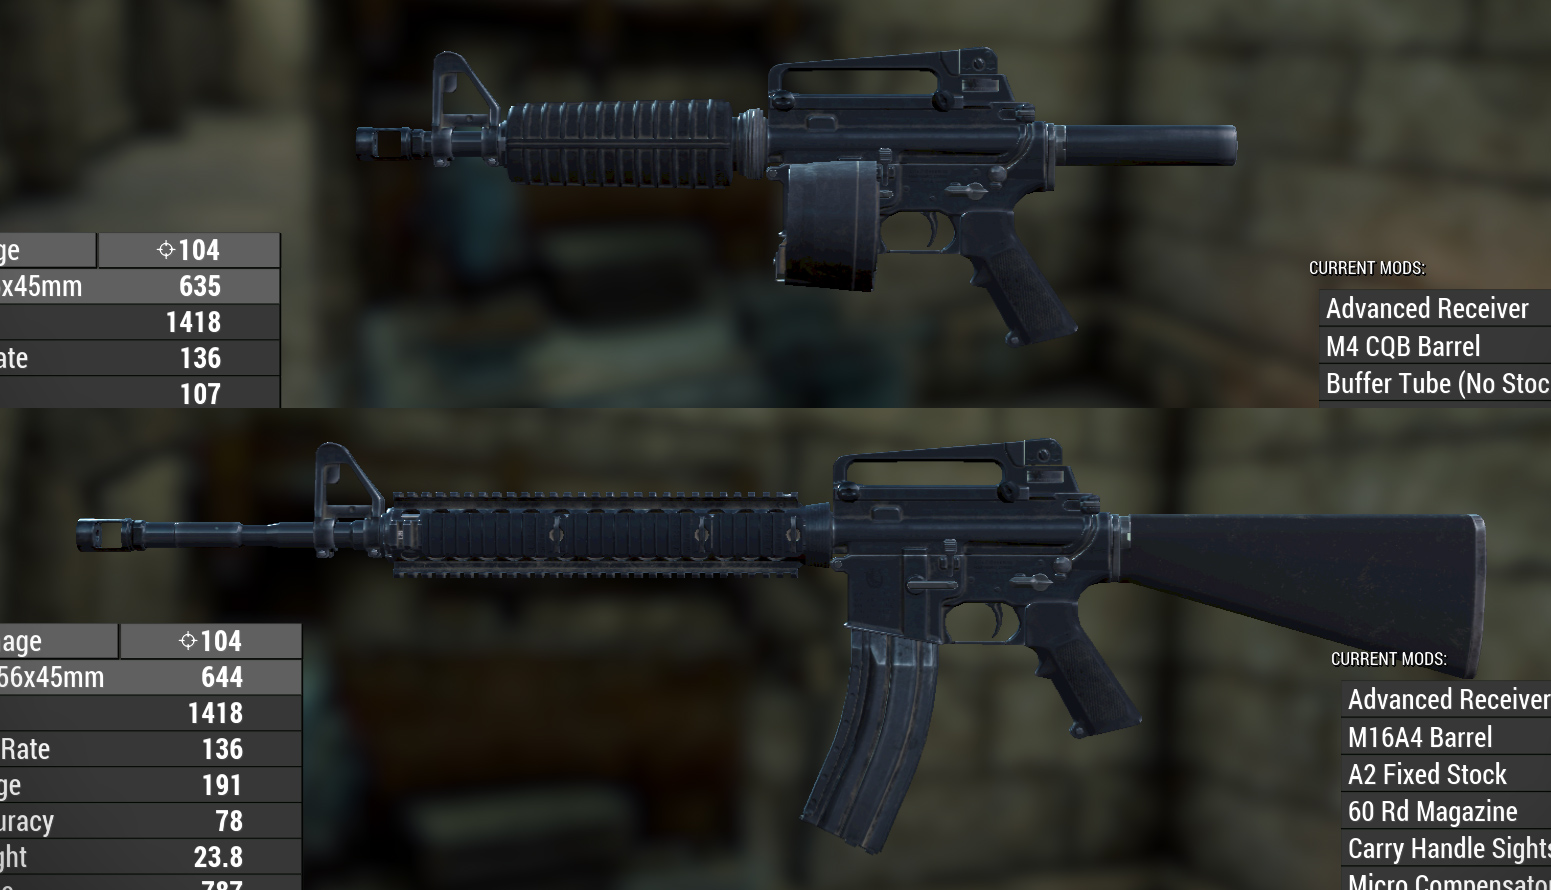 WARS WIP - AR-15 06 at Fallout 4 Nexus - Mods and community